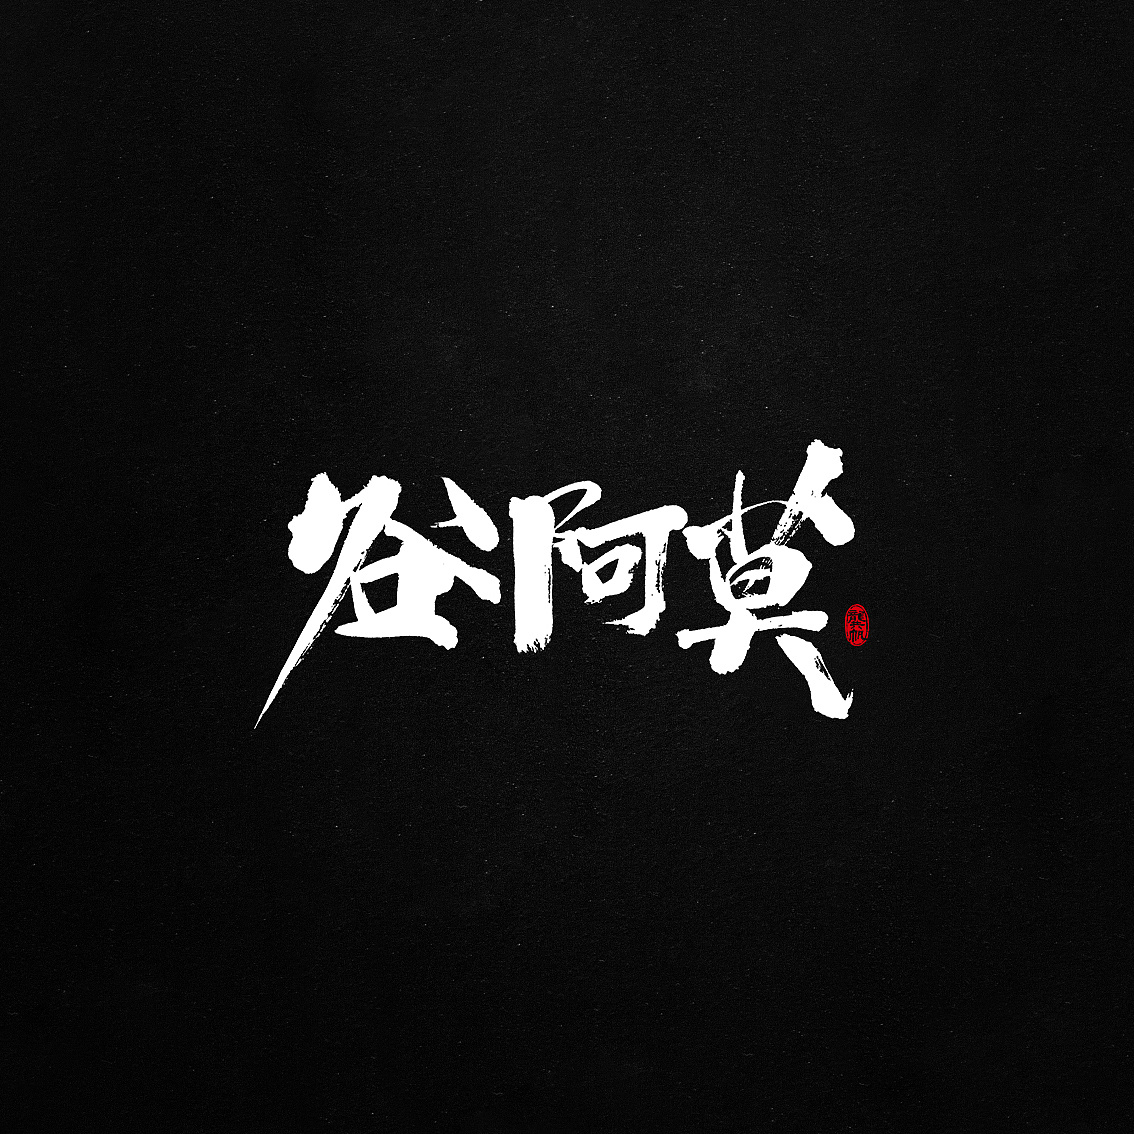 chinesefontdesign.com 2018 03 23 07 24 24 202231 17P Chinese traditional calligraphy brush calligraphy font style appreciation #113